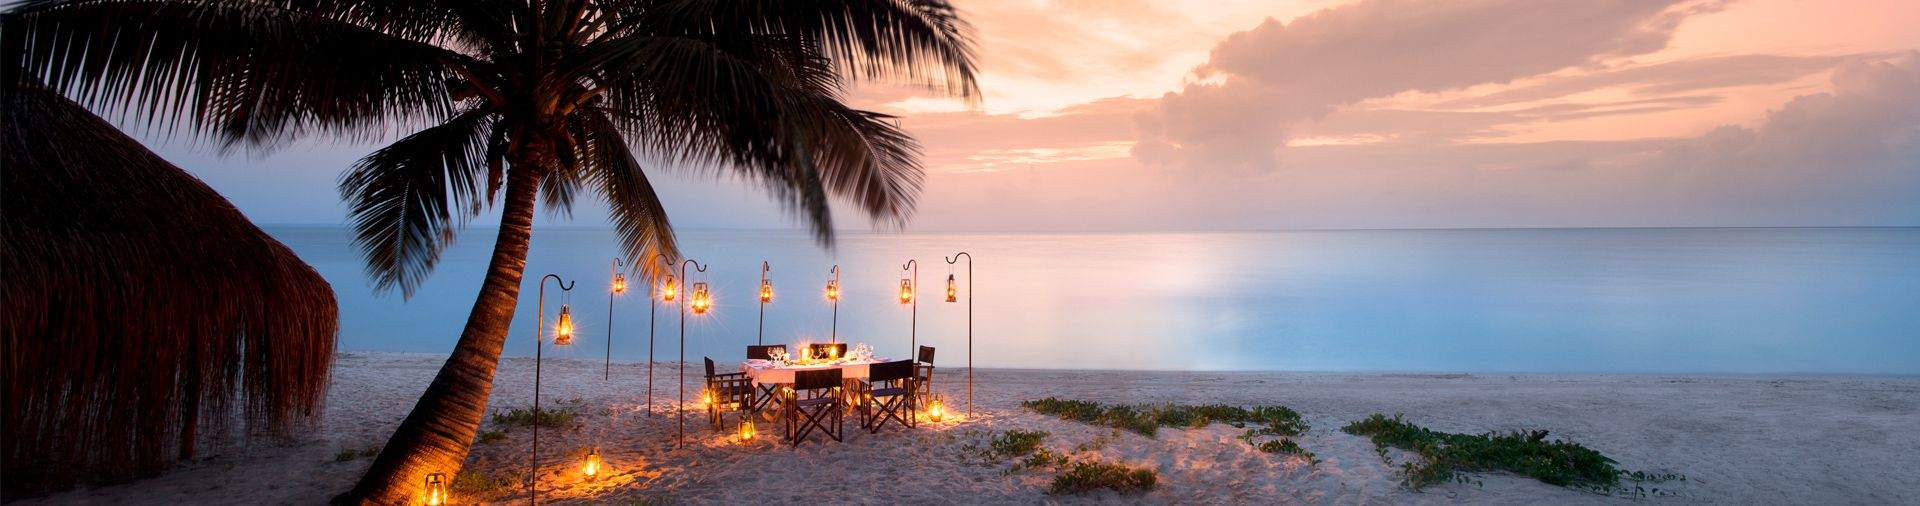 -mozambique-where-to-stay.jpg.1920x506_default